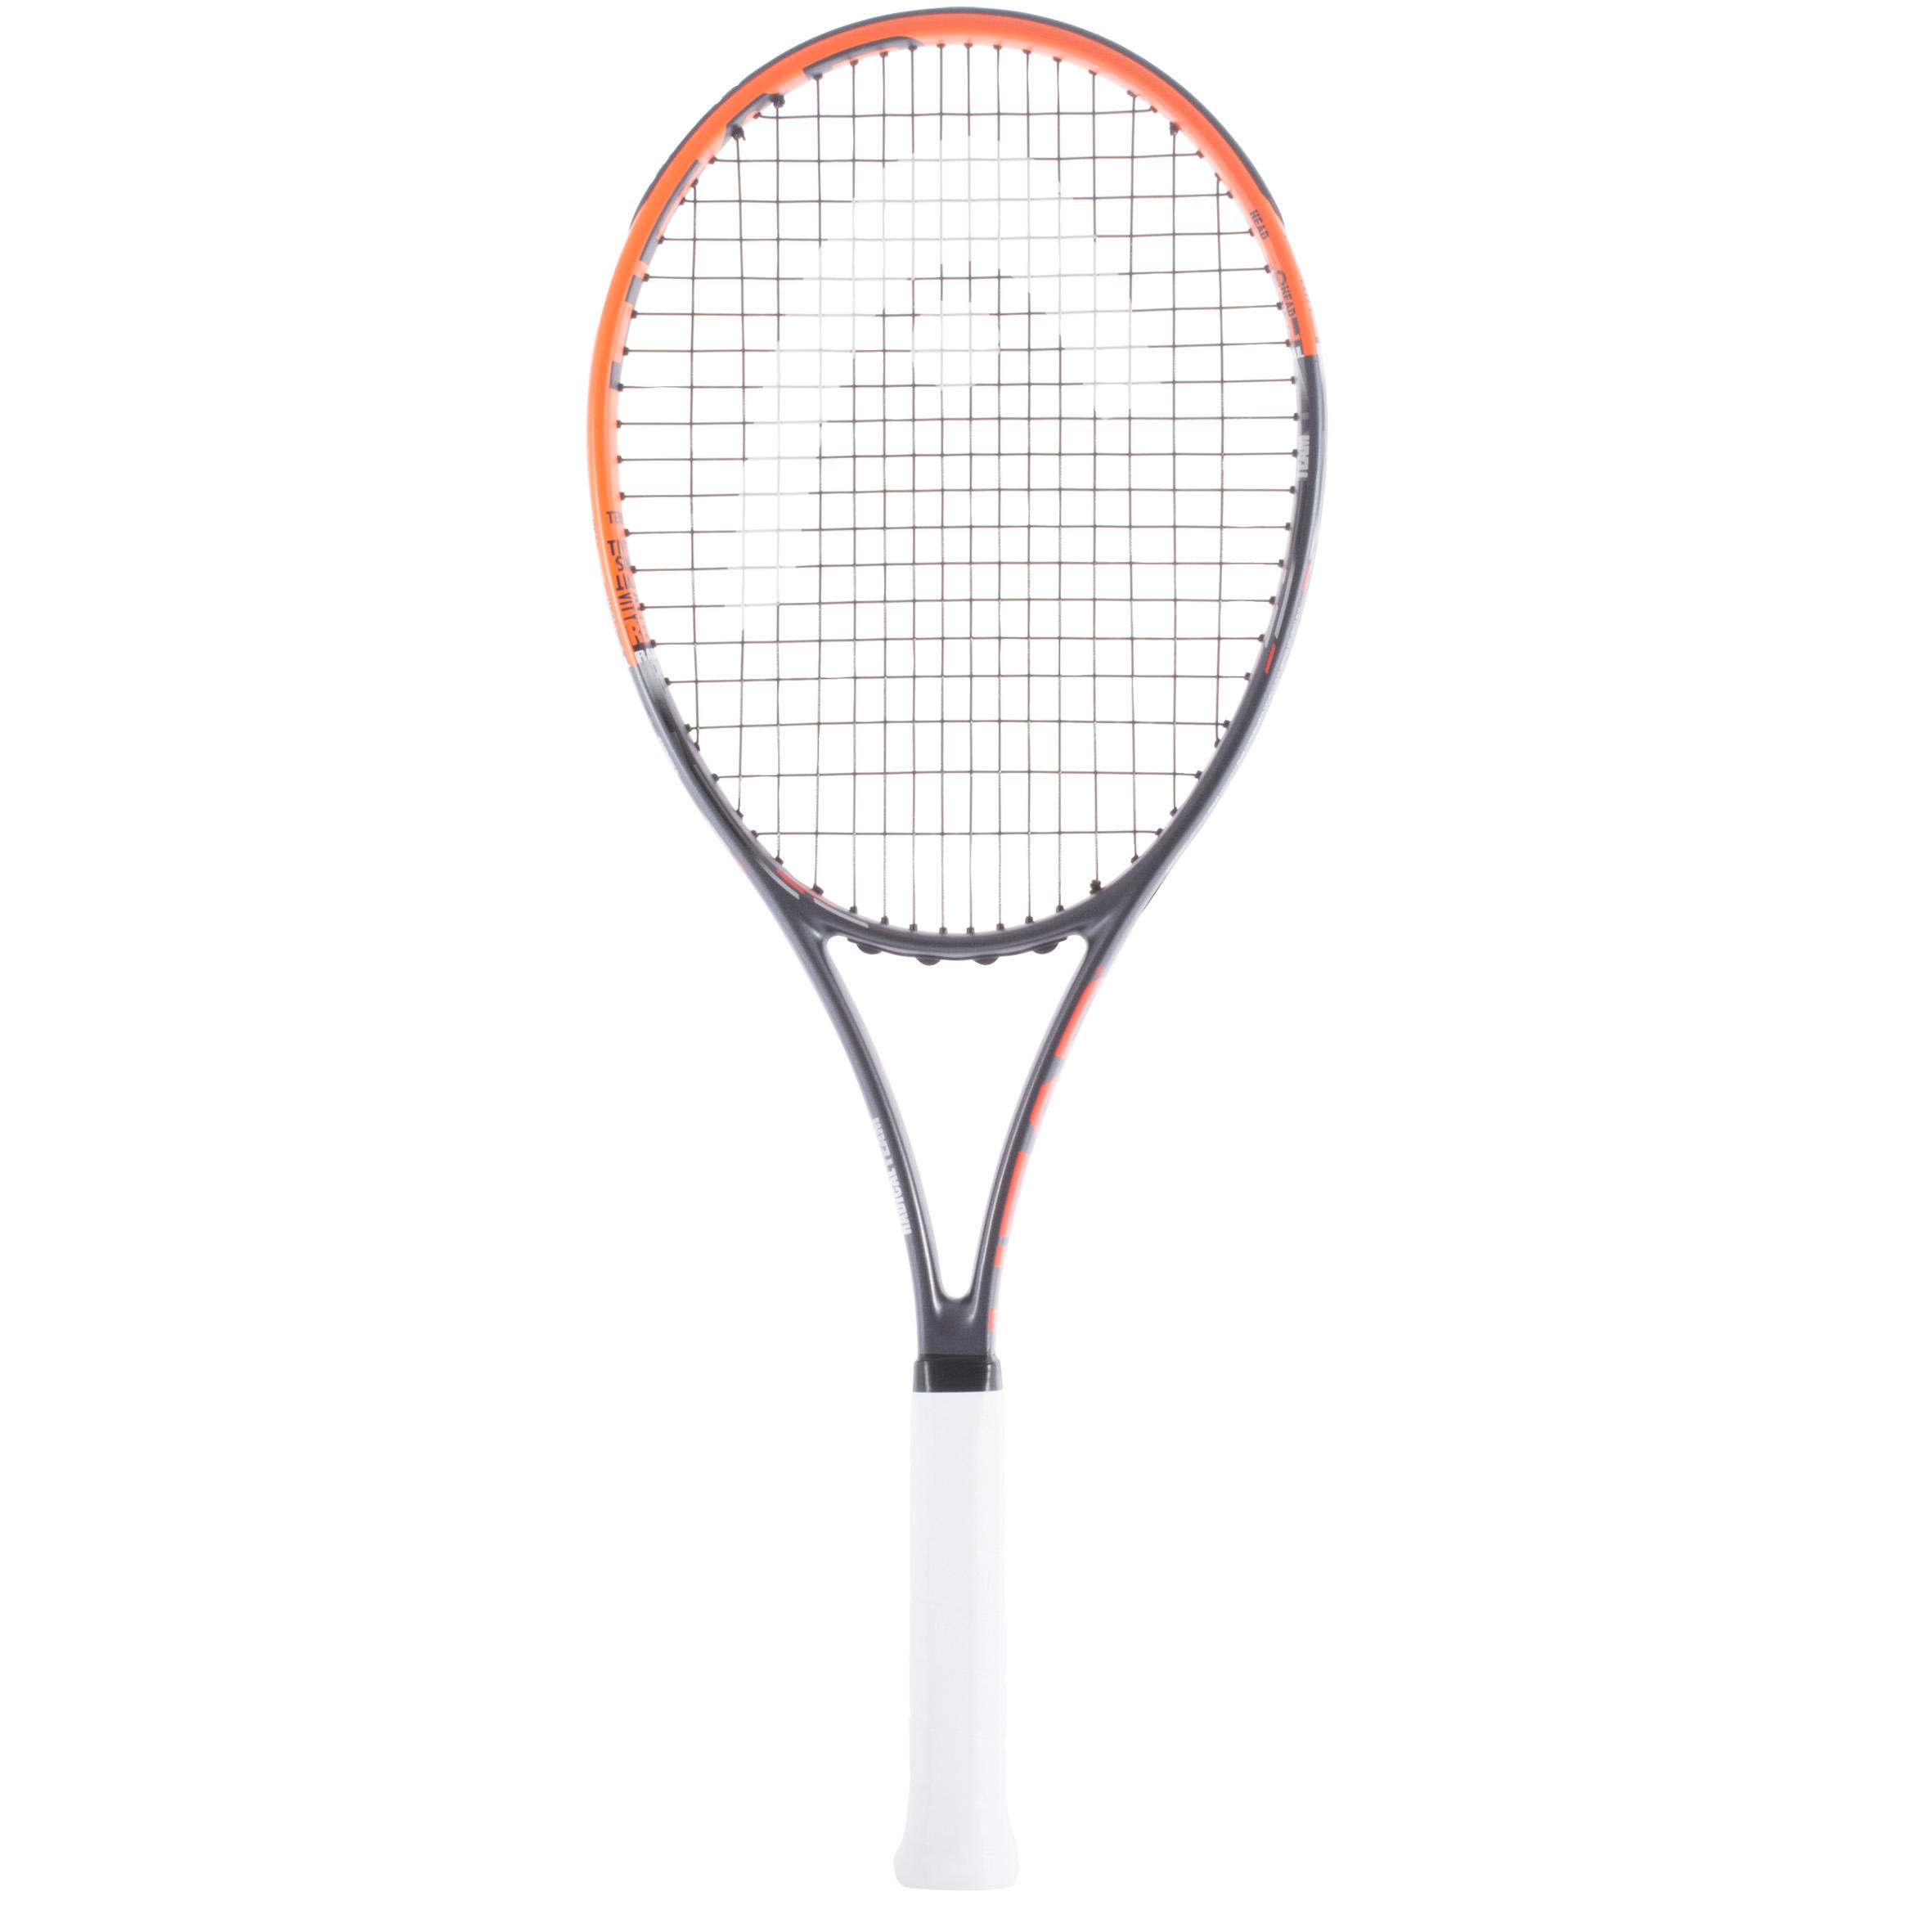 Head Tennisracket Radical Team oranje/grijs